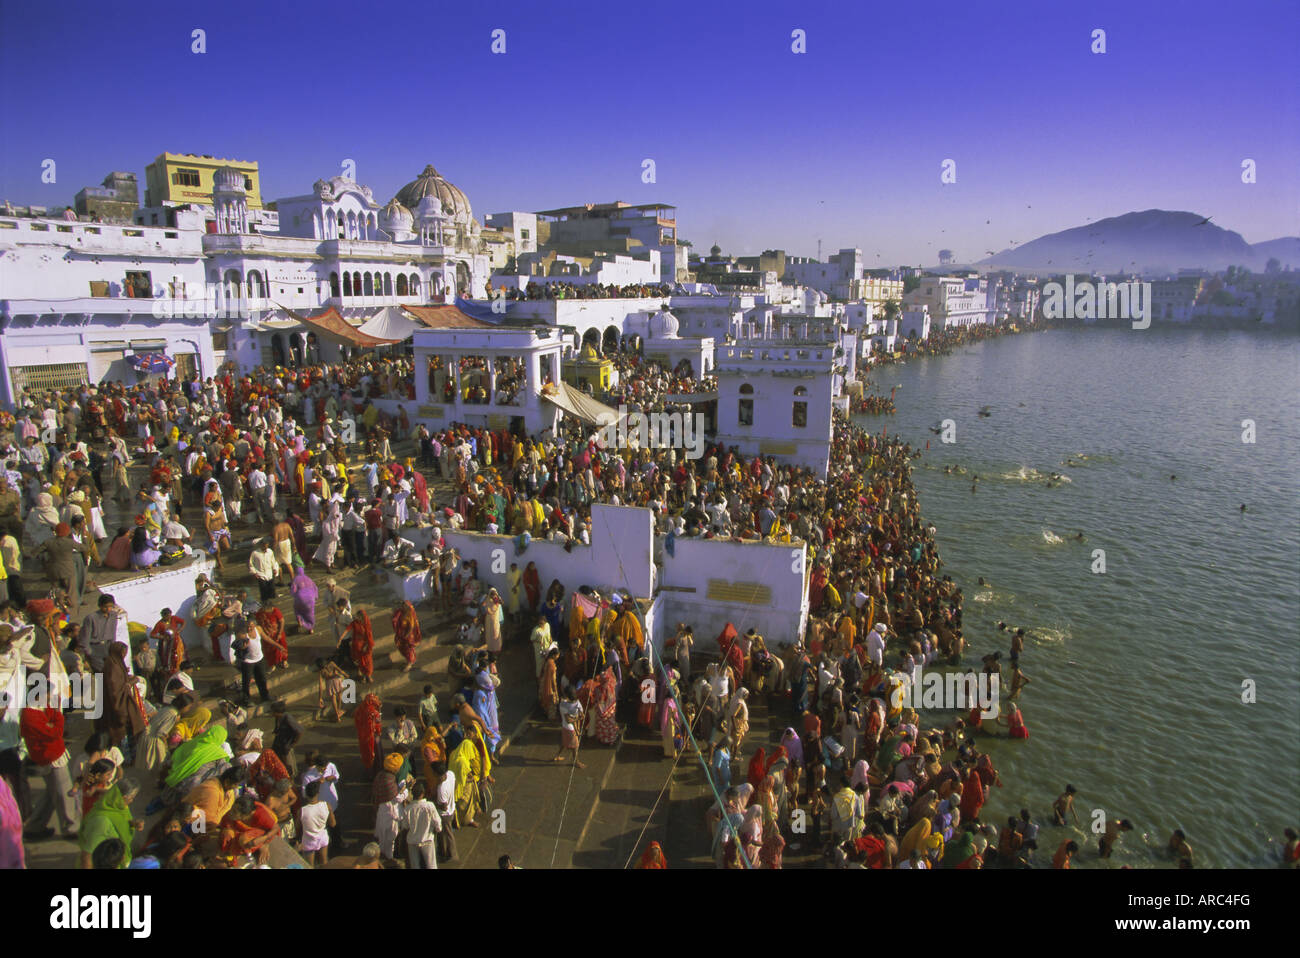 Pilgrims at the annual Hindu pilgrimage to holy Pushkar Lake, Pushkar, Rajasthan State, India, Asia - Stock Image